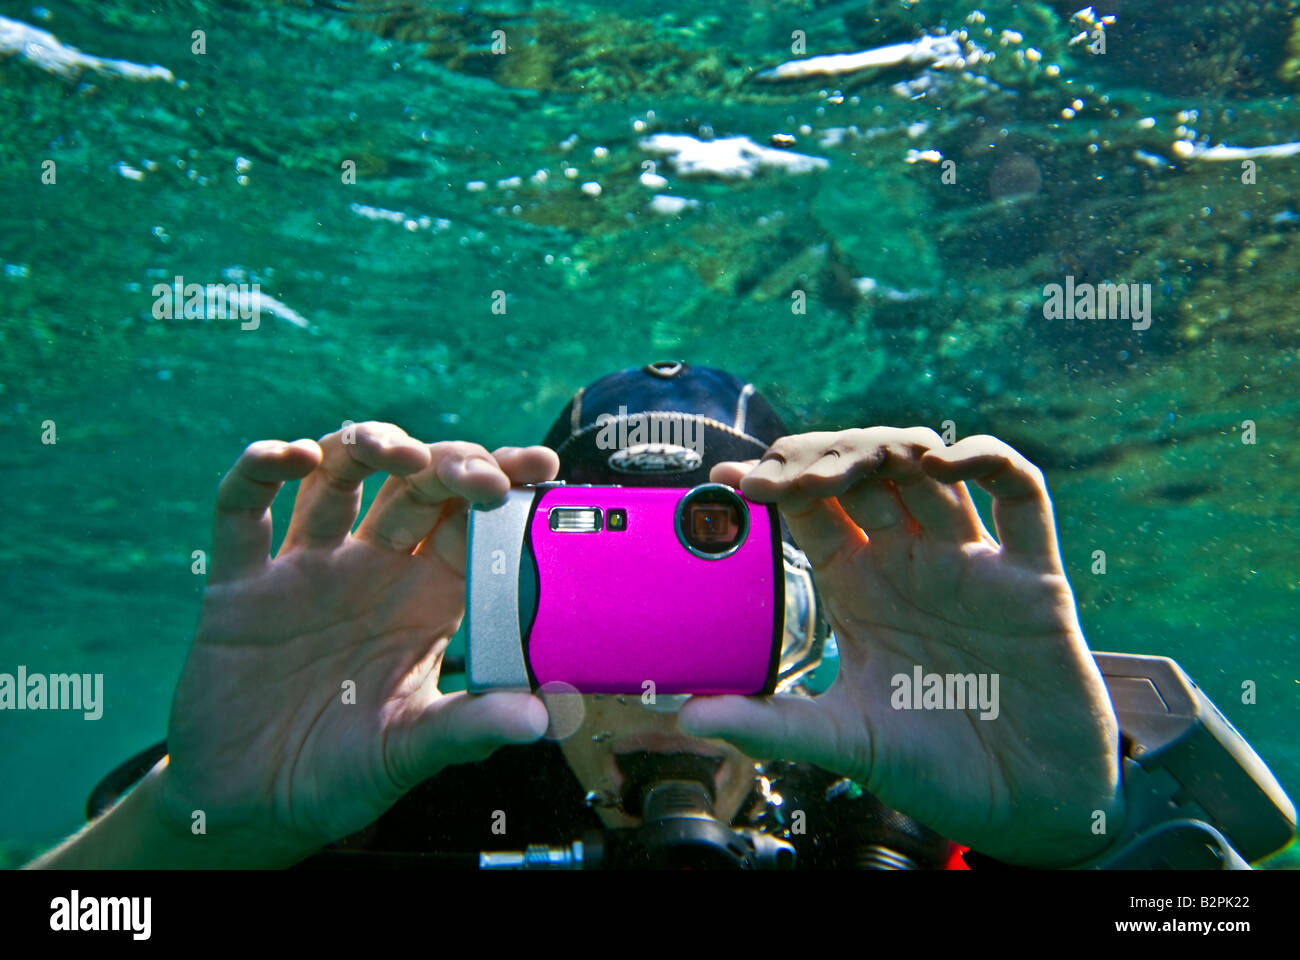 girl woman she DIVER underwater photographer taking pictures camera small compact tight diver dive pink lilac lila - Stock Image